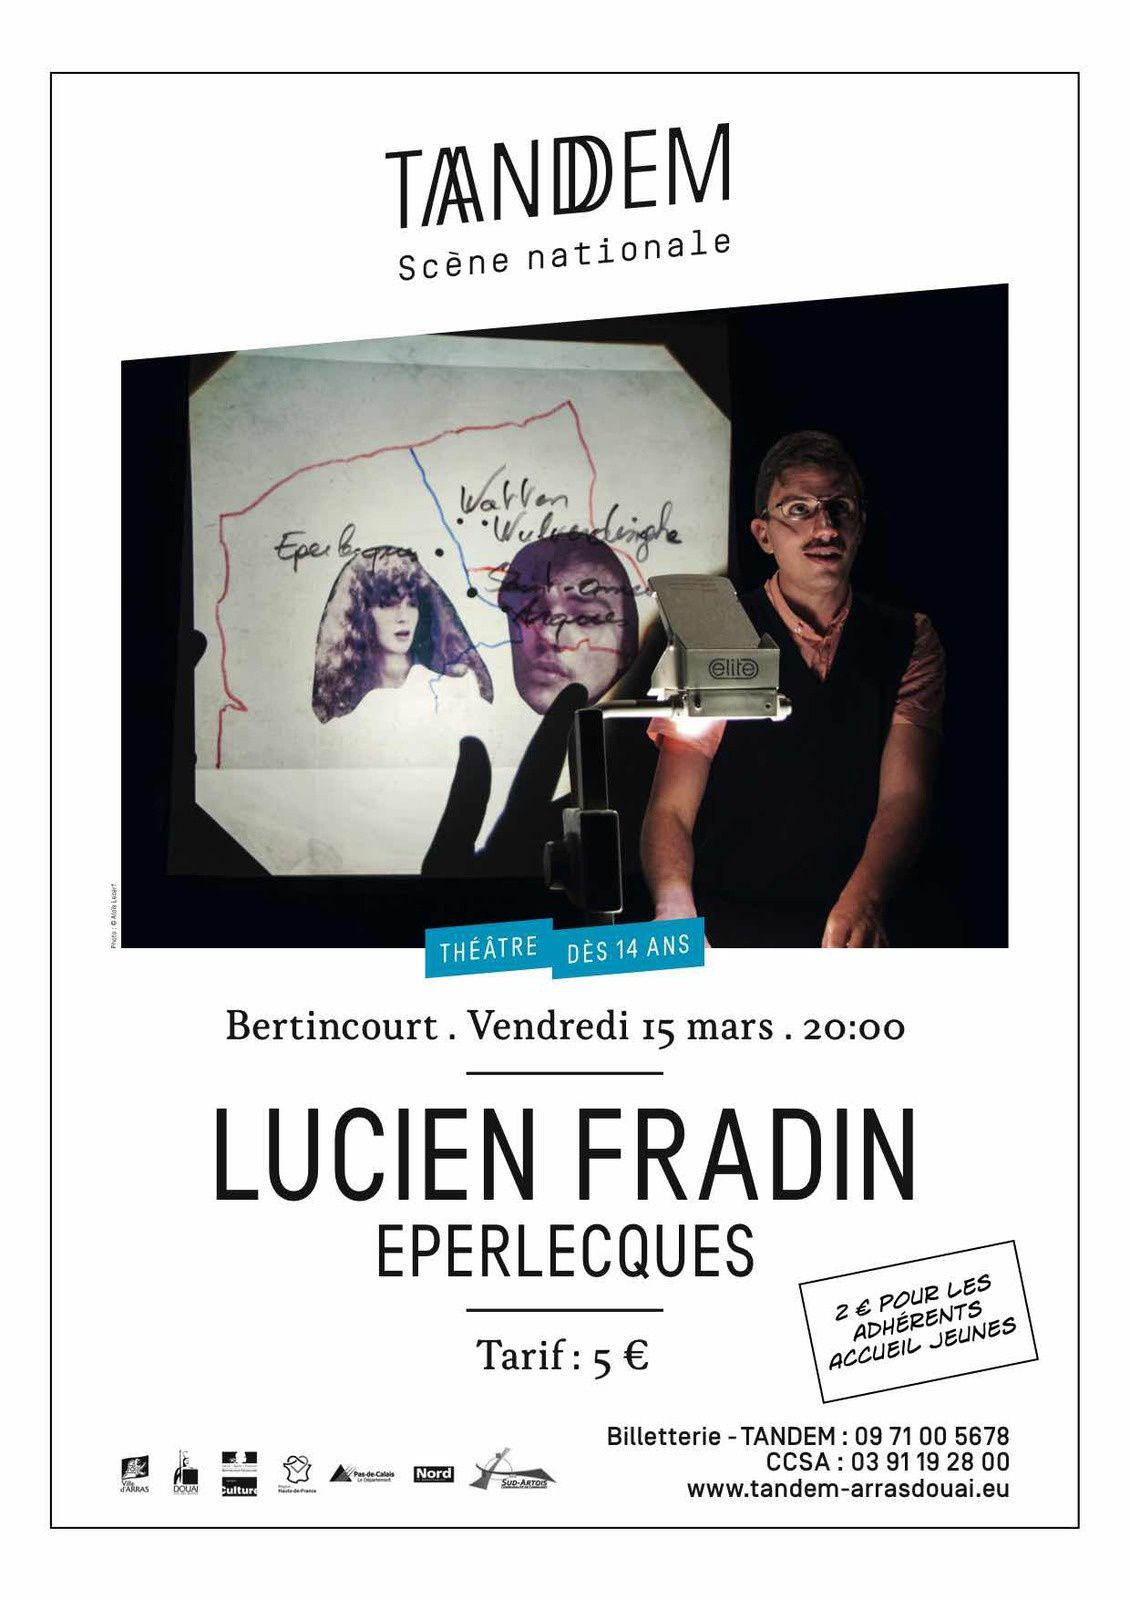 SPECTACLE - EPERLECQUES -  Lucien Fradin -